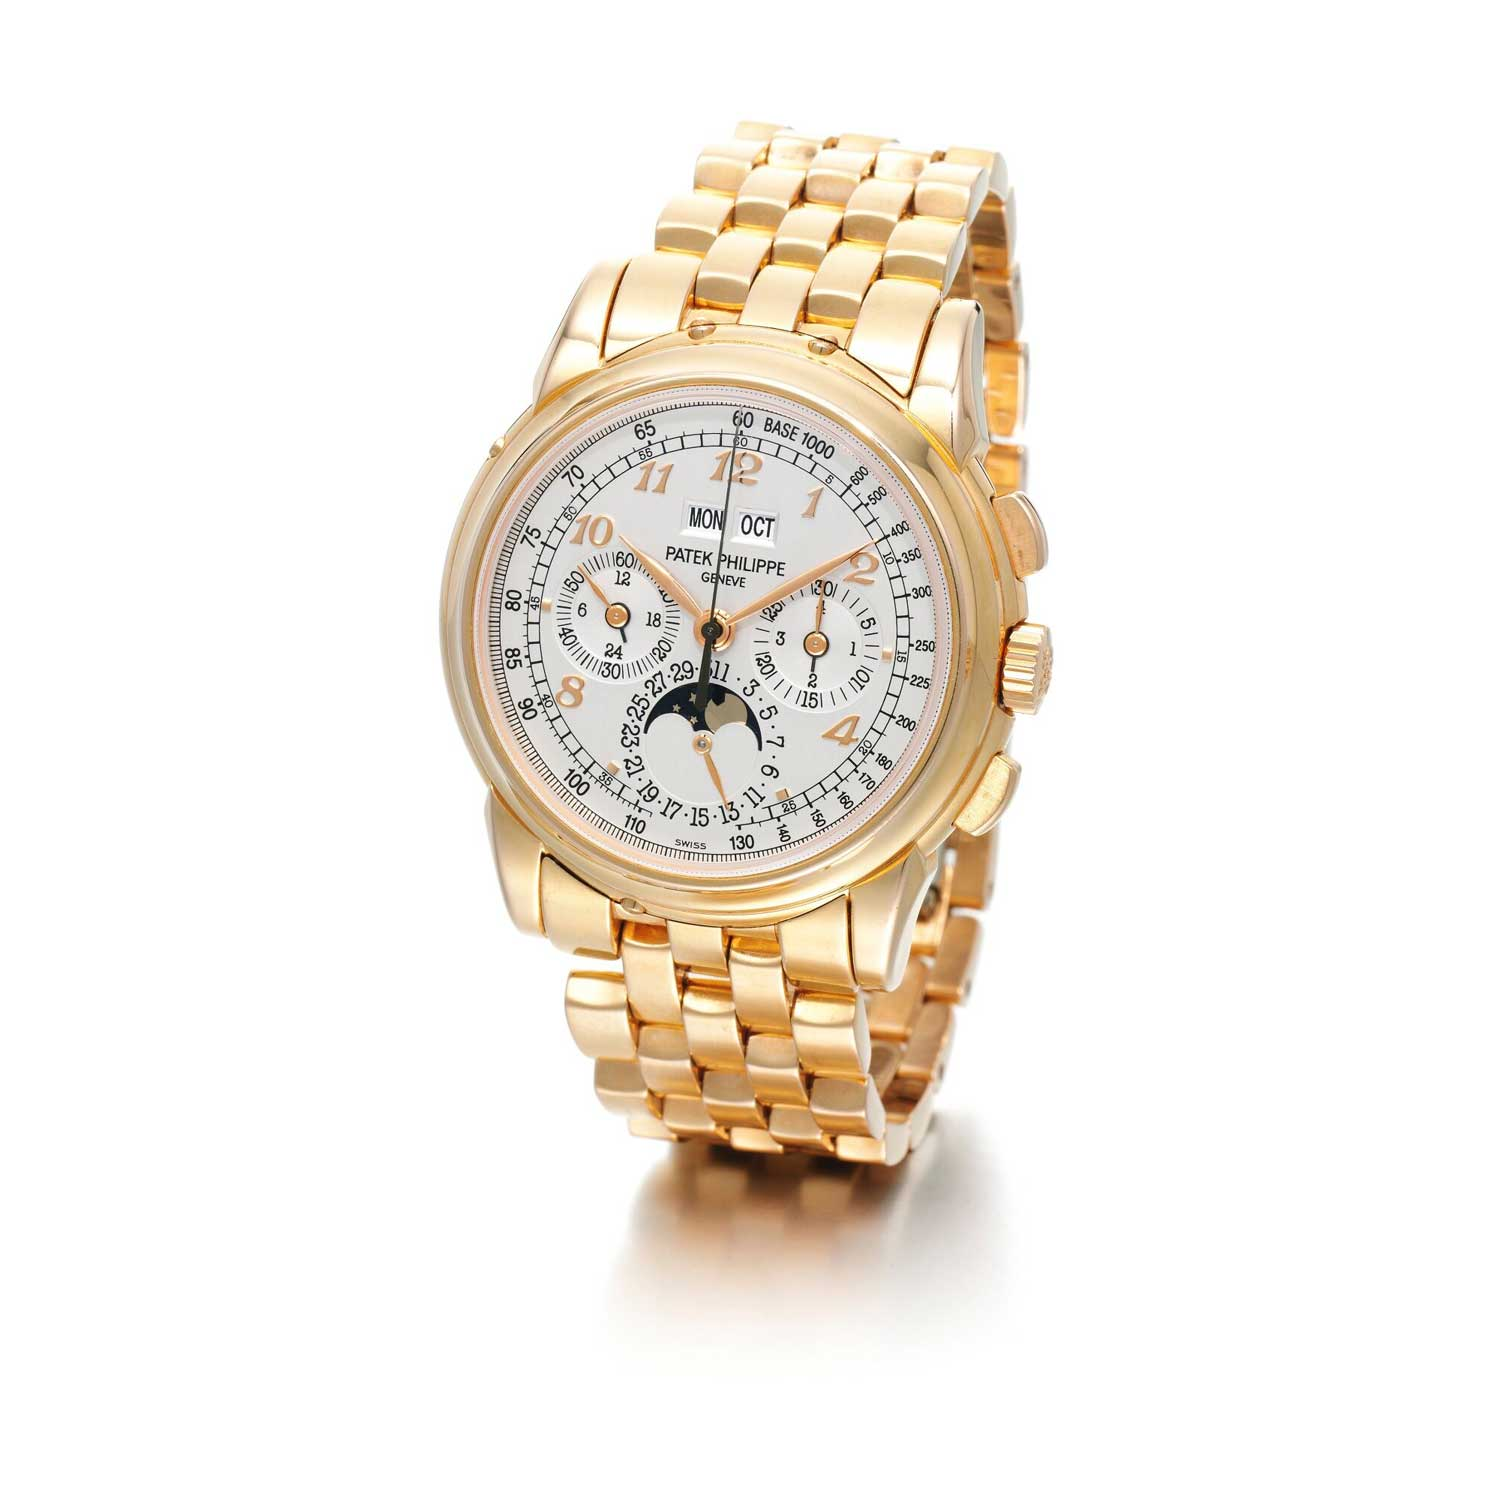 Formerly in the collection of Eric Clapton, CBE, a pink gold Patek Philippe ref. 5970 perpetual calendar chronograph wristwatch with a white dial and applied Breguet numerals (Image: sothebys.com)